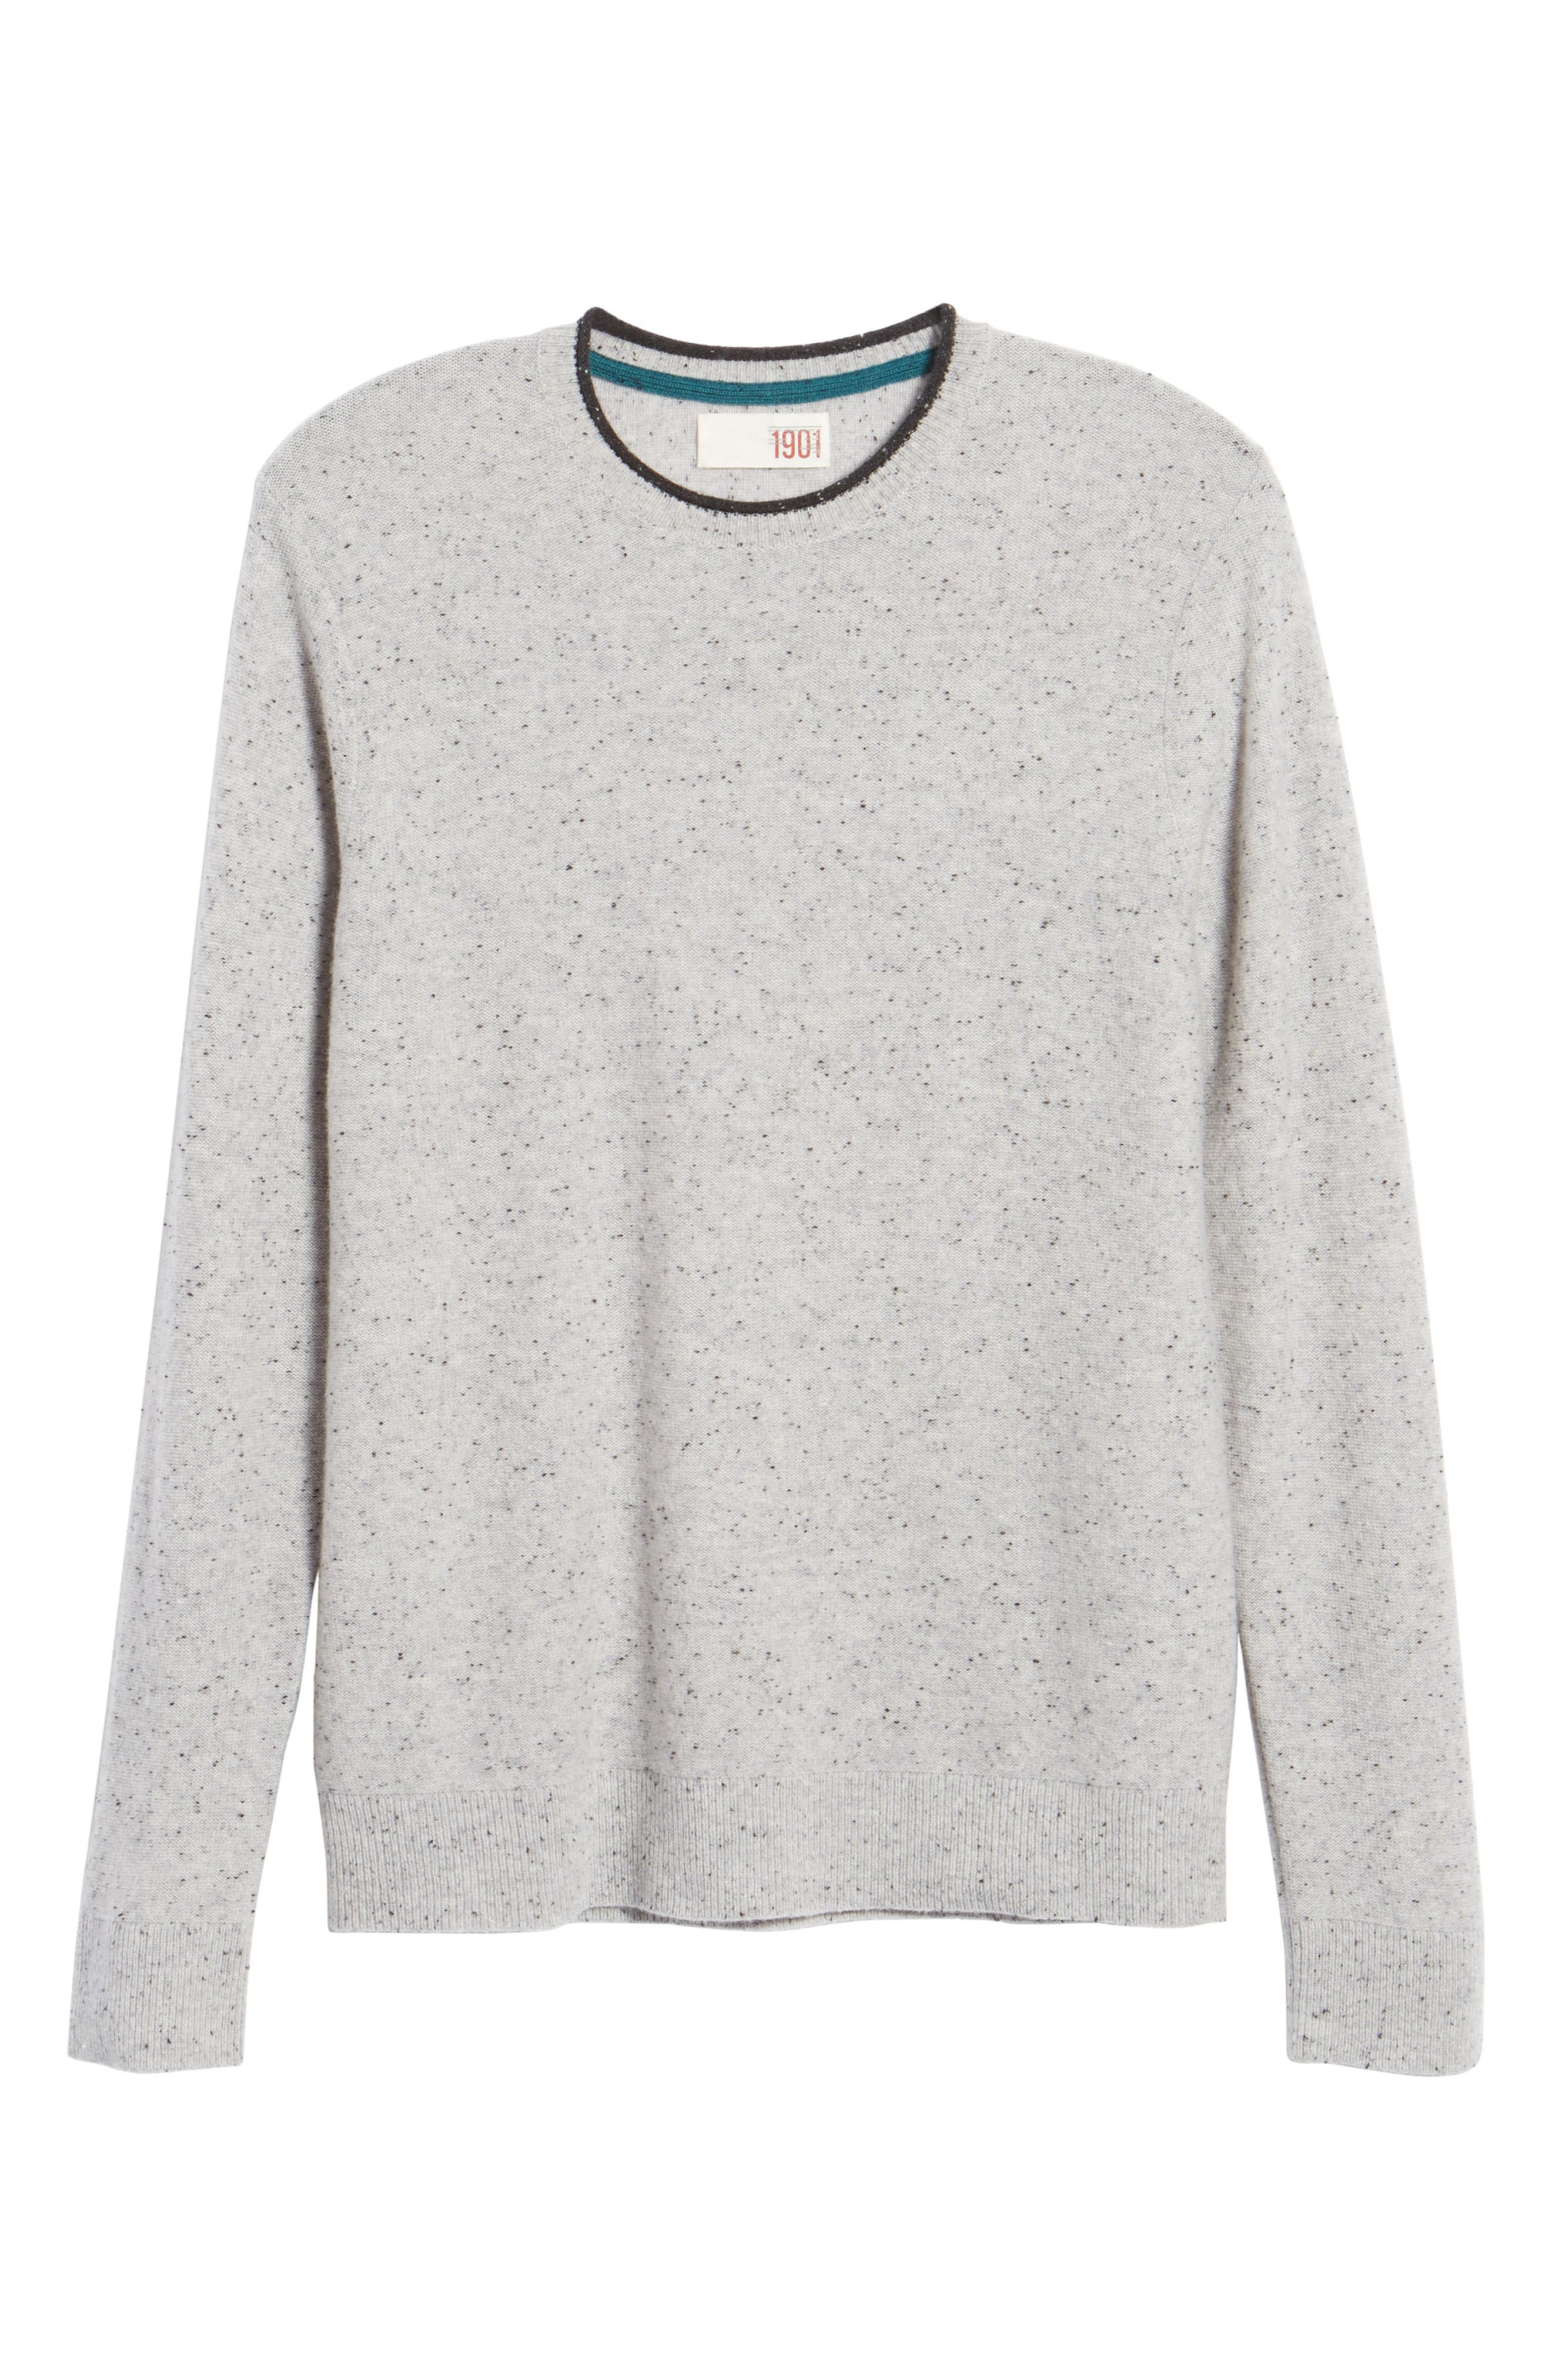 Nep Wool & Cashmere Sweater,                             Alternate thumbnail 6, color,                             020